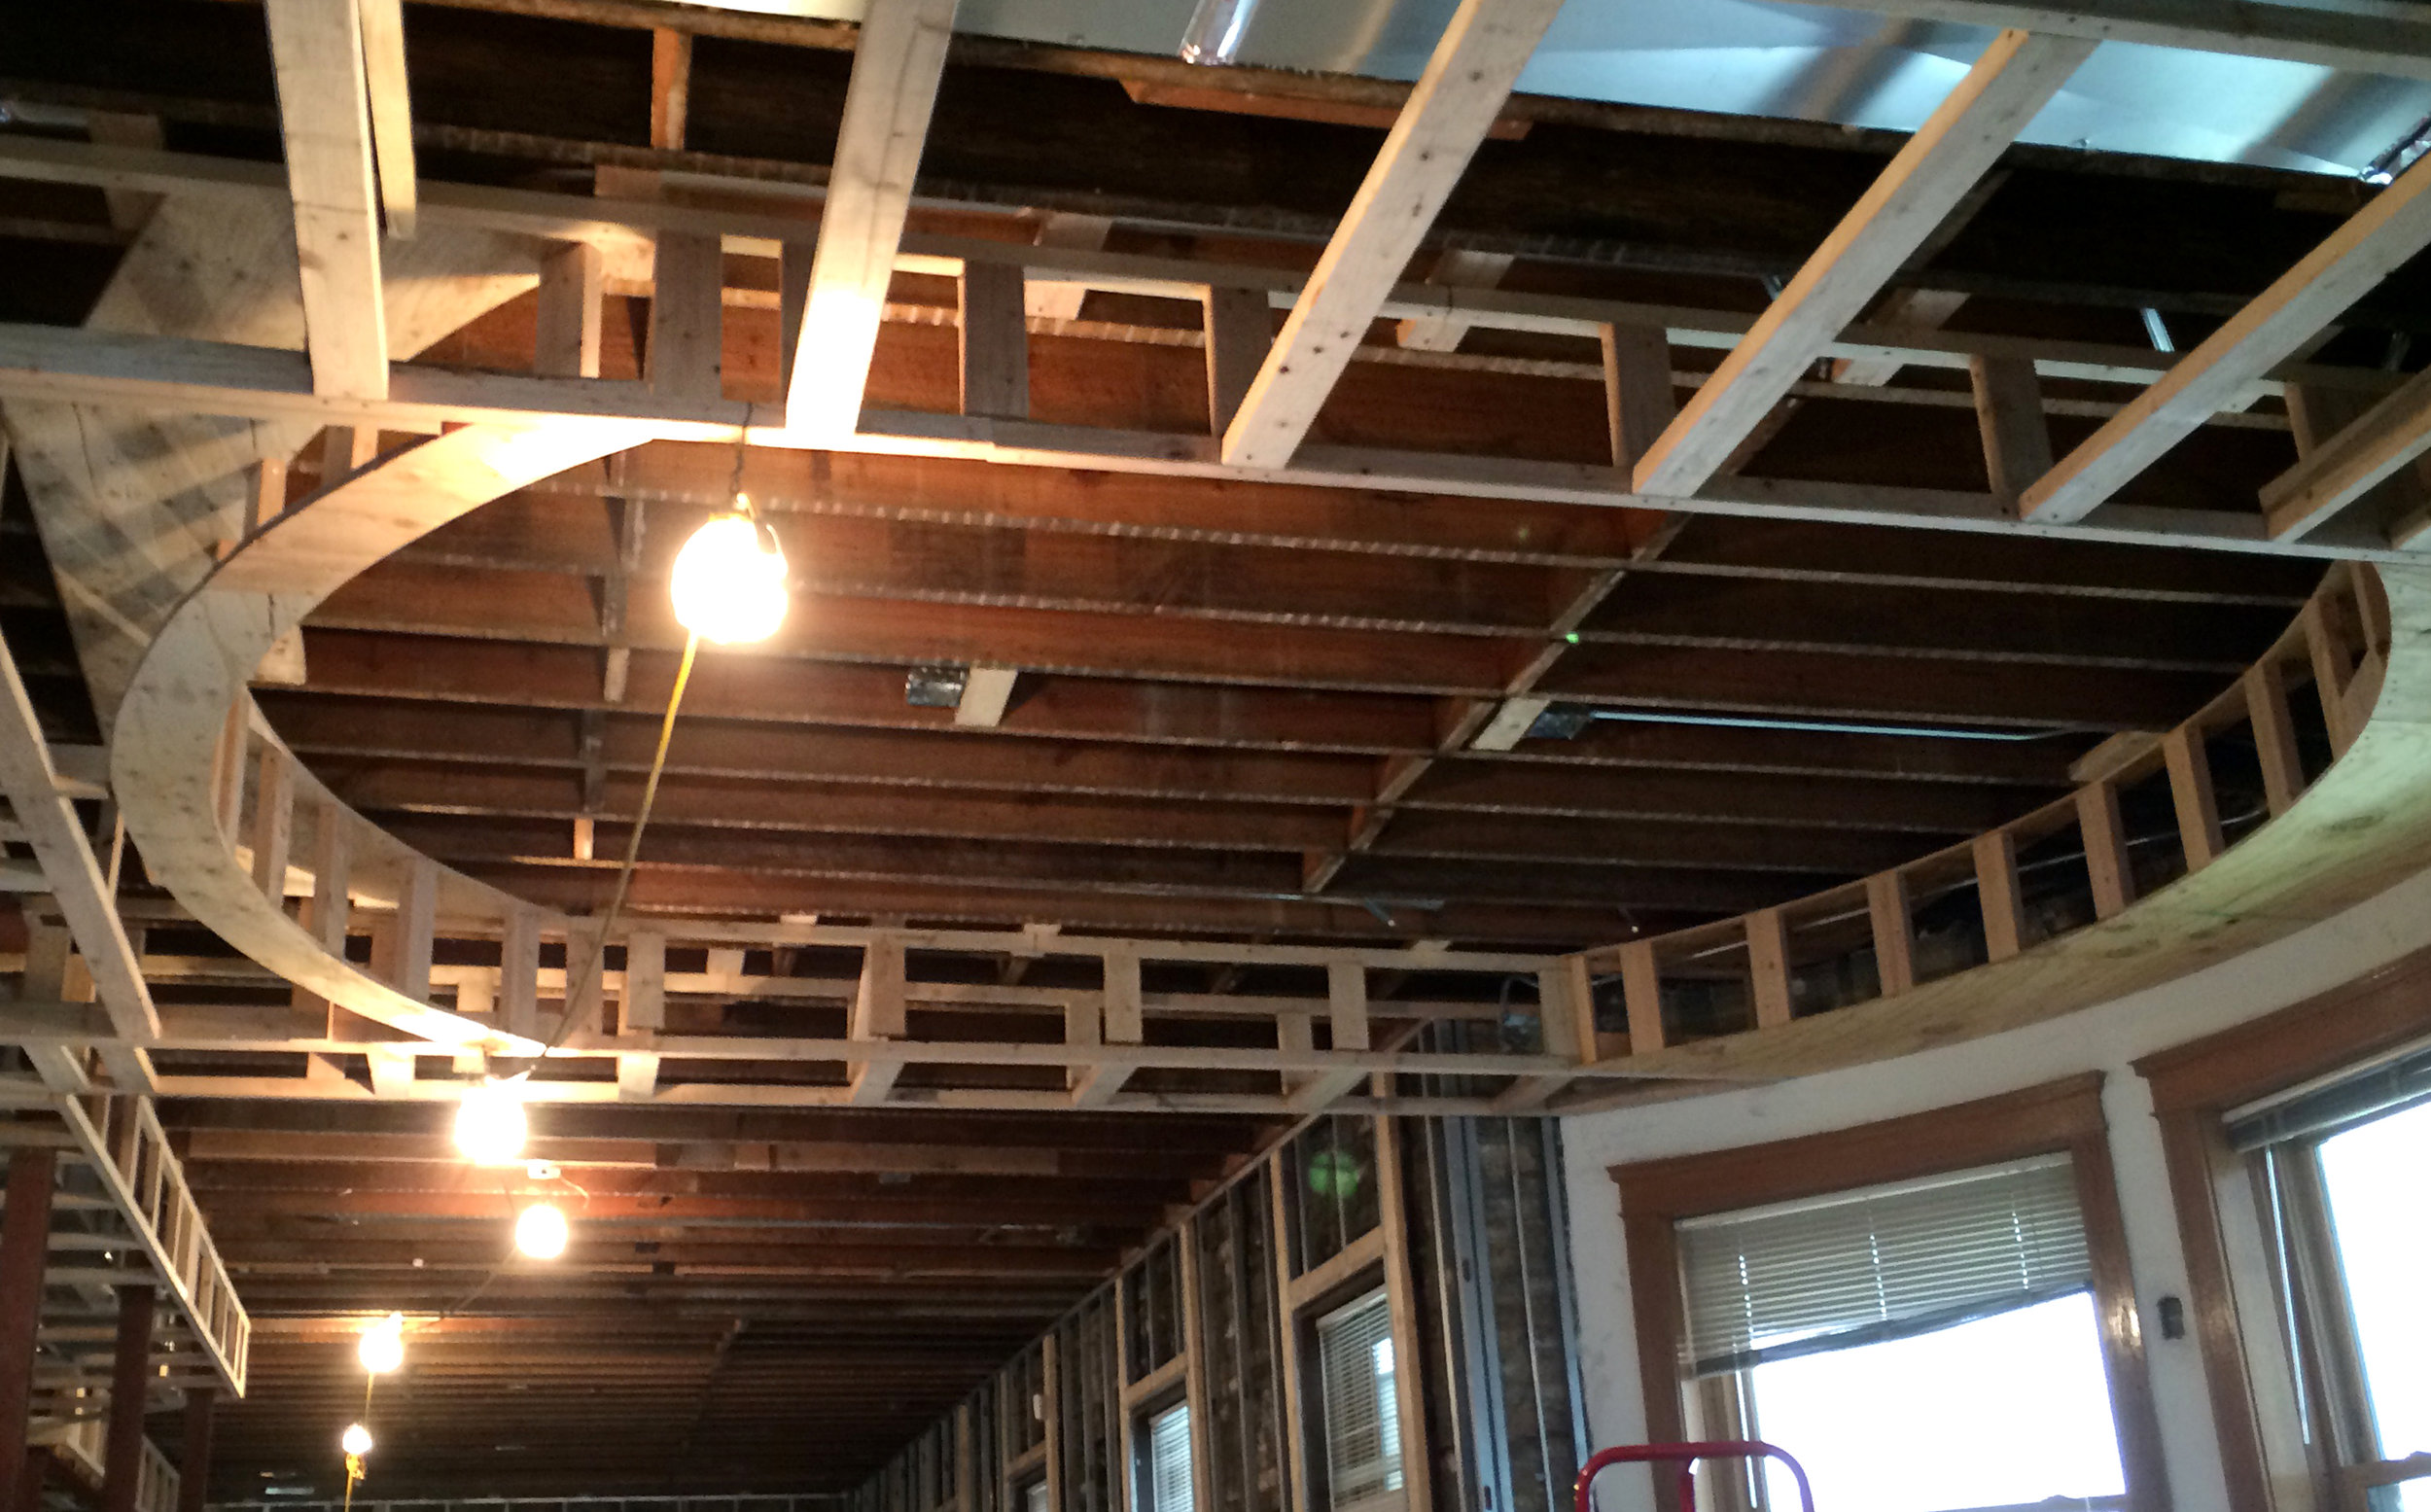 Site visit photo: construction of a drop ceiling with cove lighting above a dining room